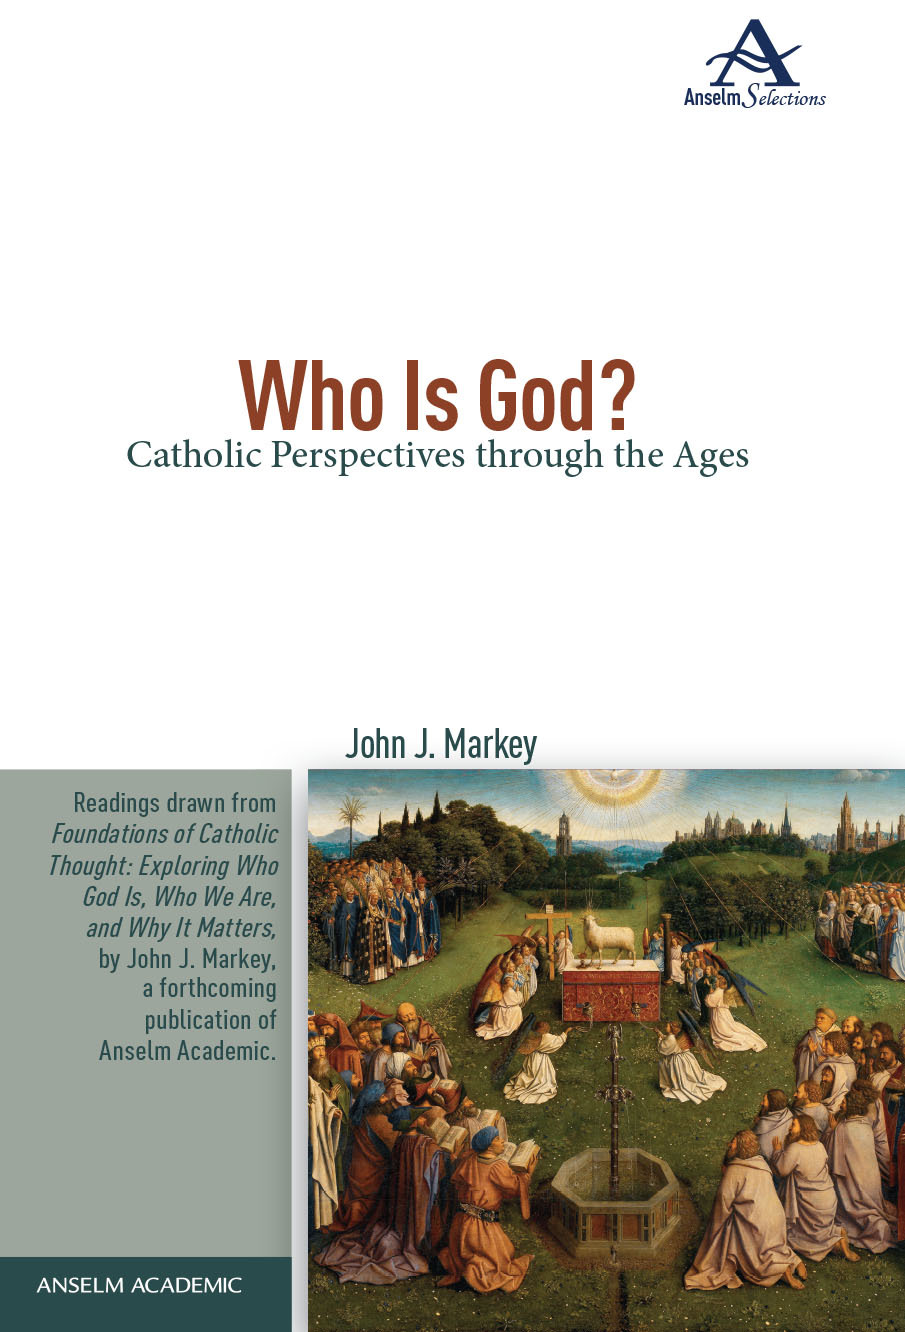 Who Is God? Catholic Perspectives through the Ages - PDF